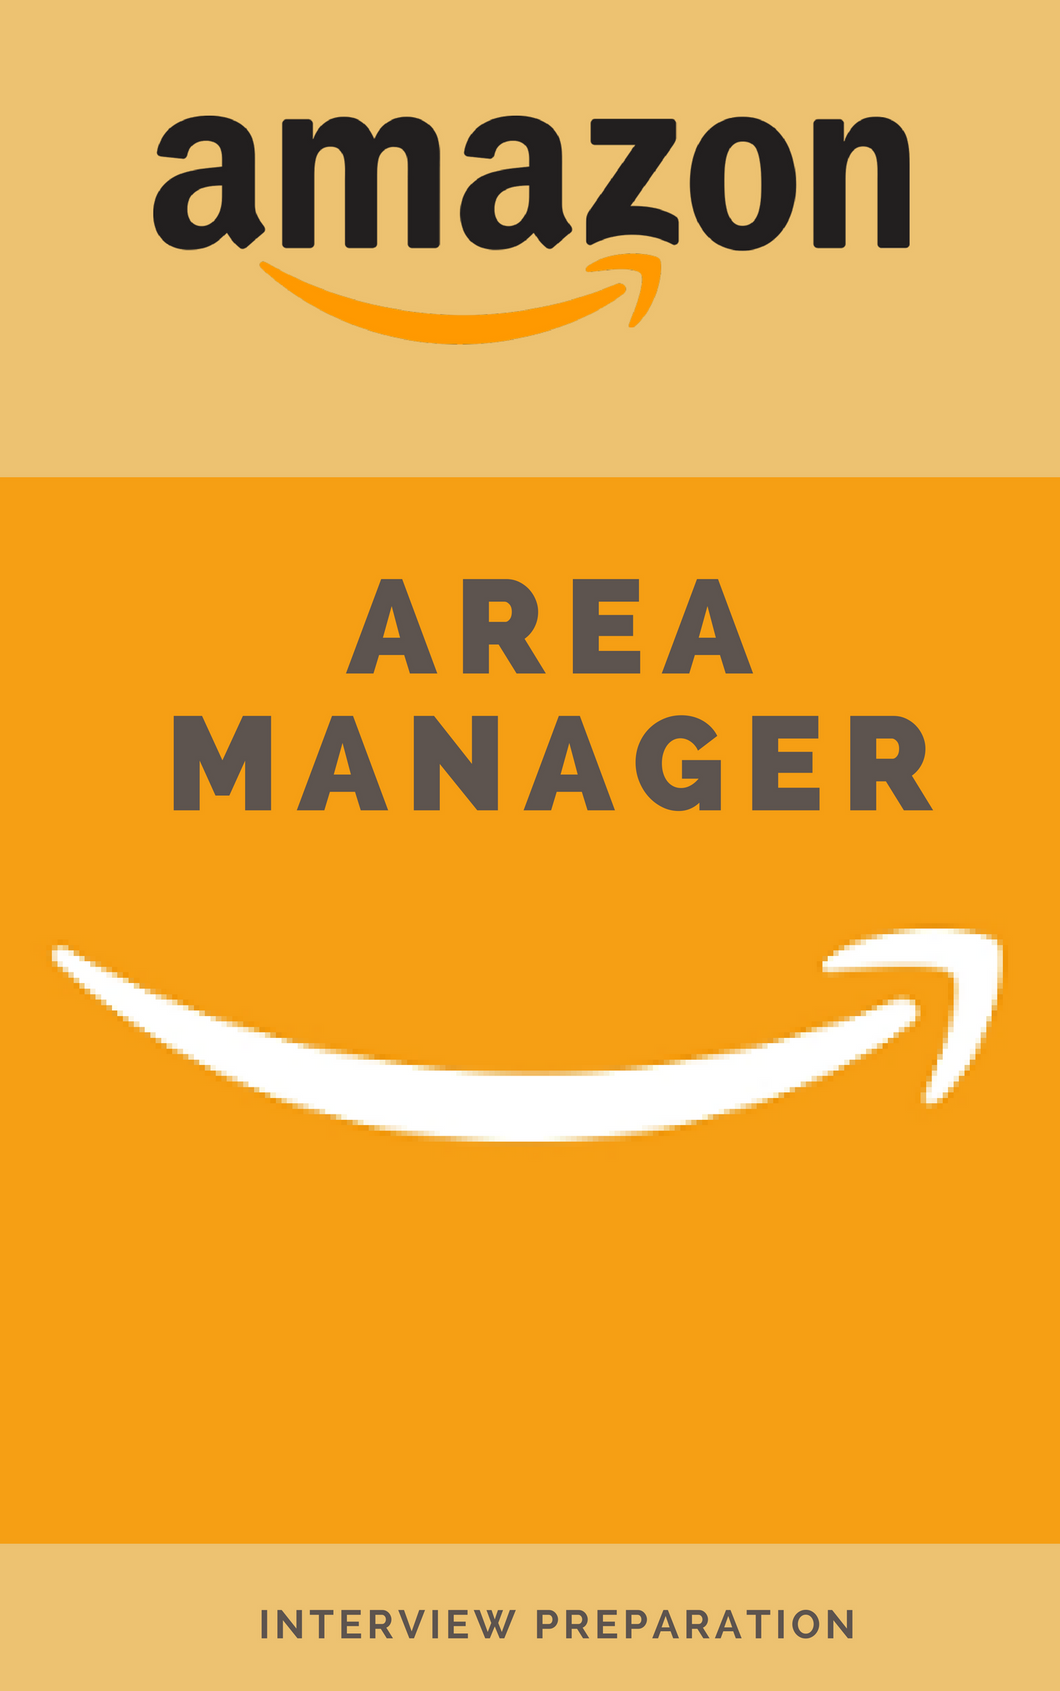 Amazon Area Manager Interview Preparation Study Guide